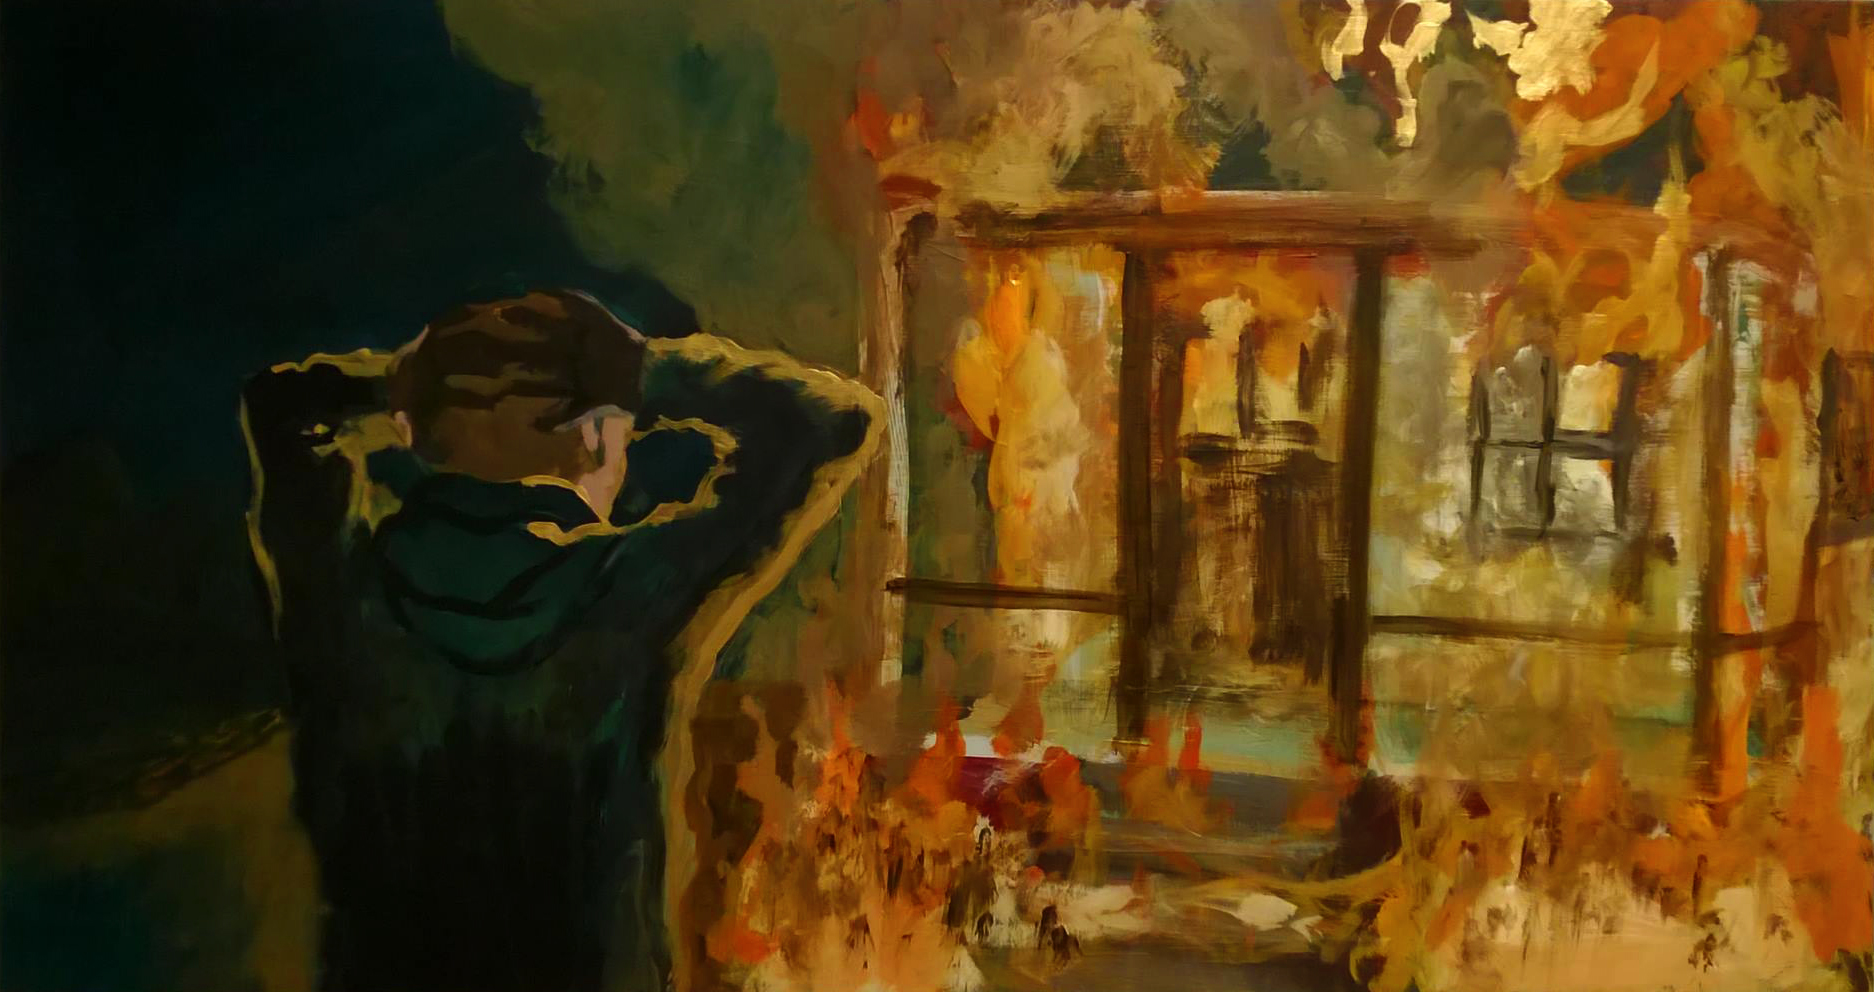 Bjørn the Destroyer